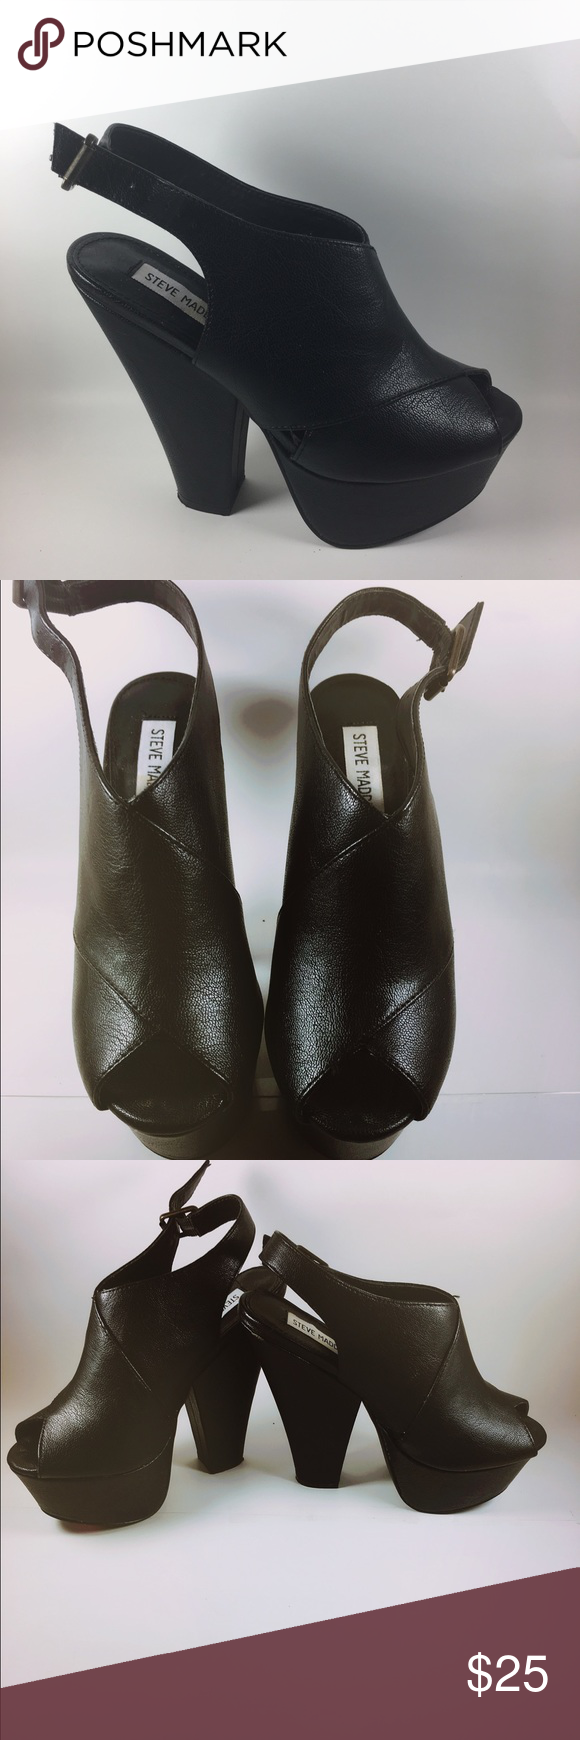 Steve Madden black platform sling backs (Like New)Steve Madden platform sling backs Steve Madden Shoes Platforms